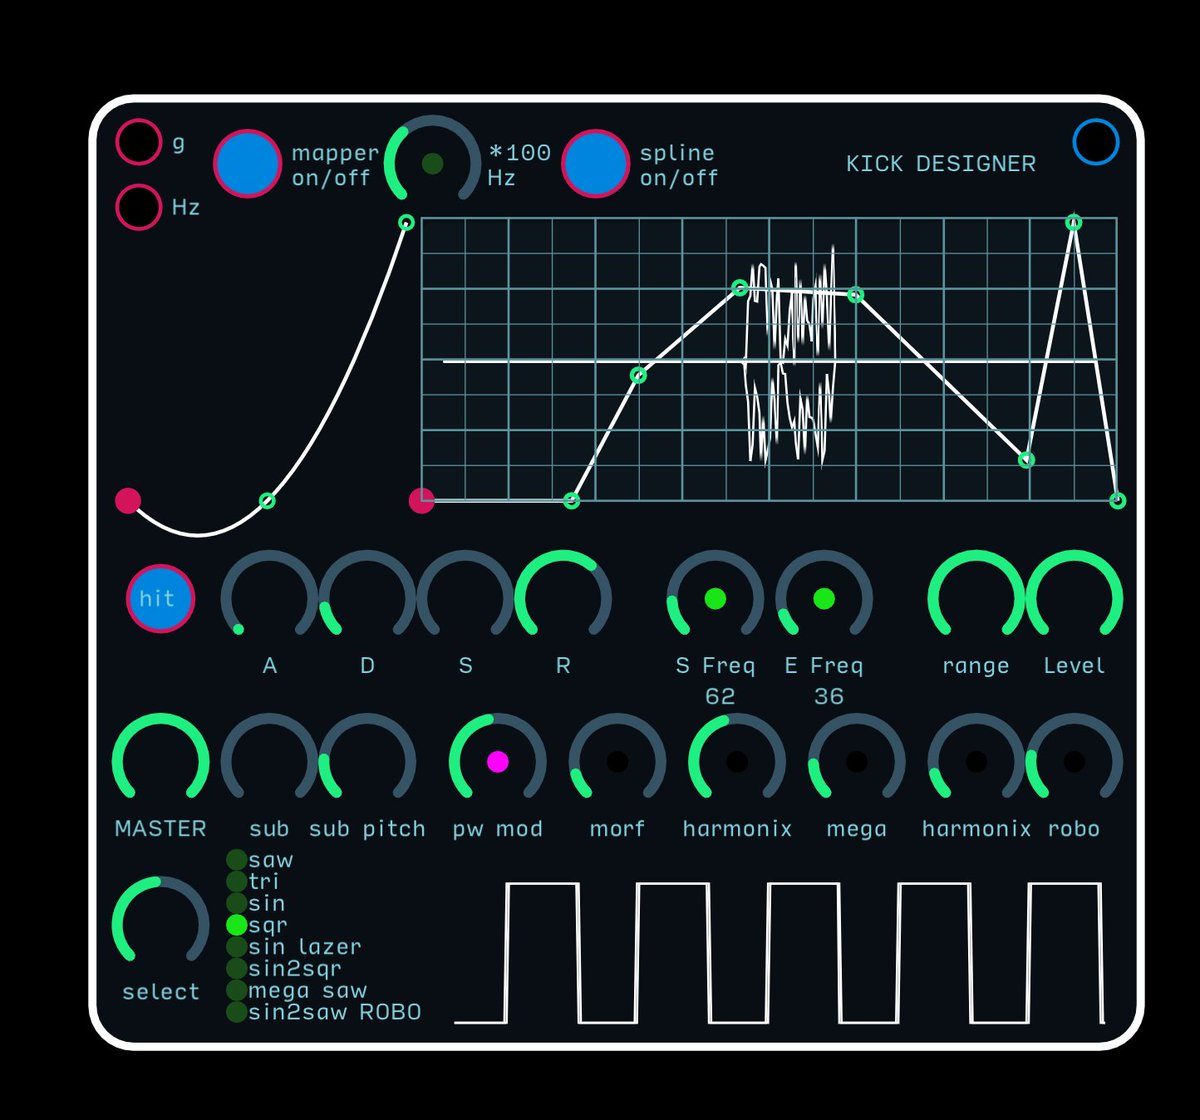 Audulus on twitter new kickdrum designer created by audulus audulus on twitter new kickdrum designer created by audulus forum user chenzenmfk httpstsvwlgrzgy3 ccuart Image collections